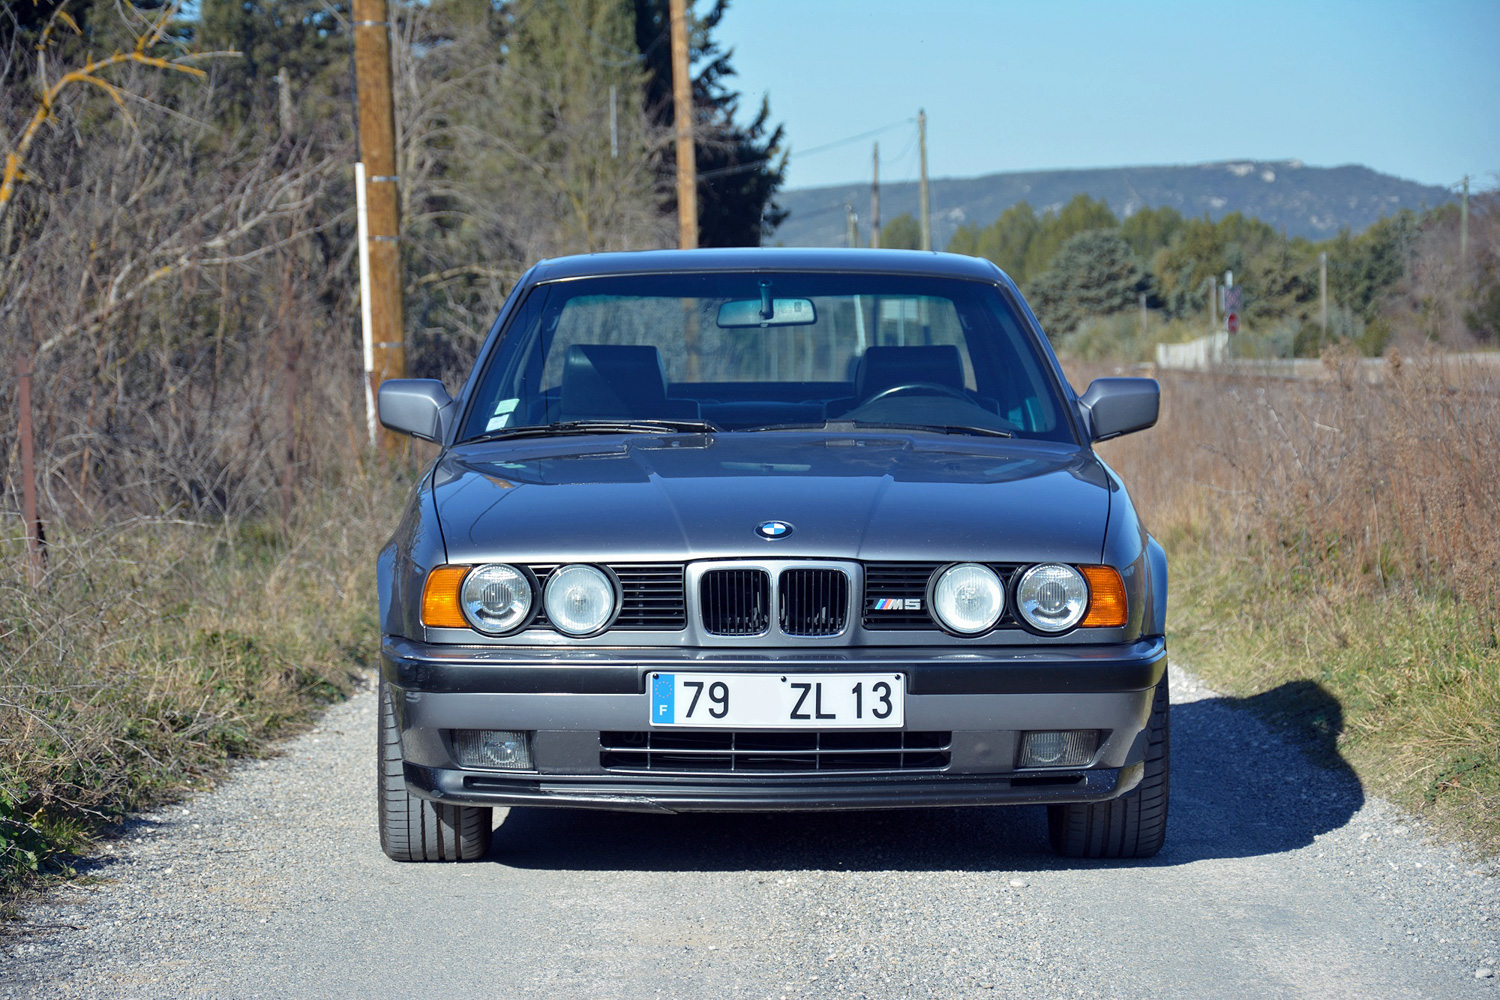 The second-generation M5 is an underappreciated bargain thumbnail